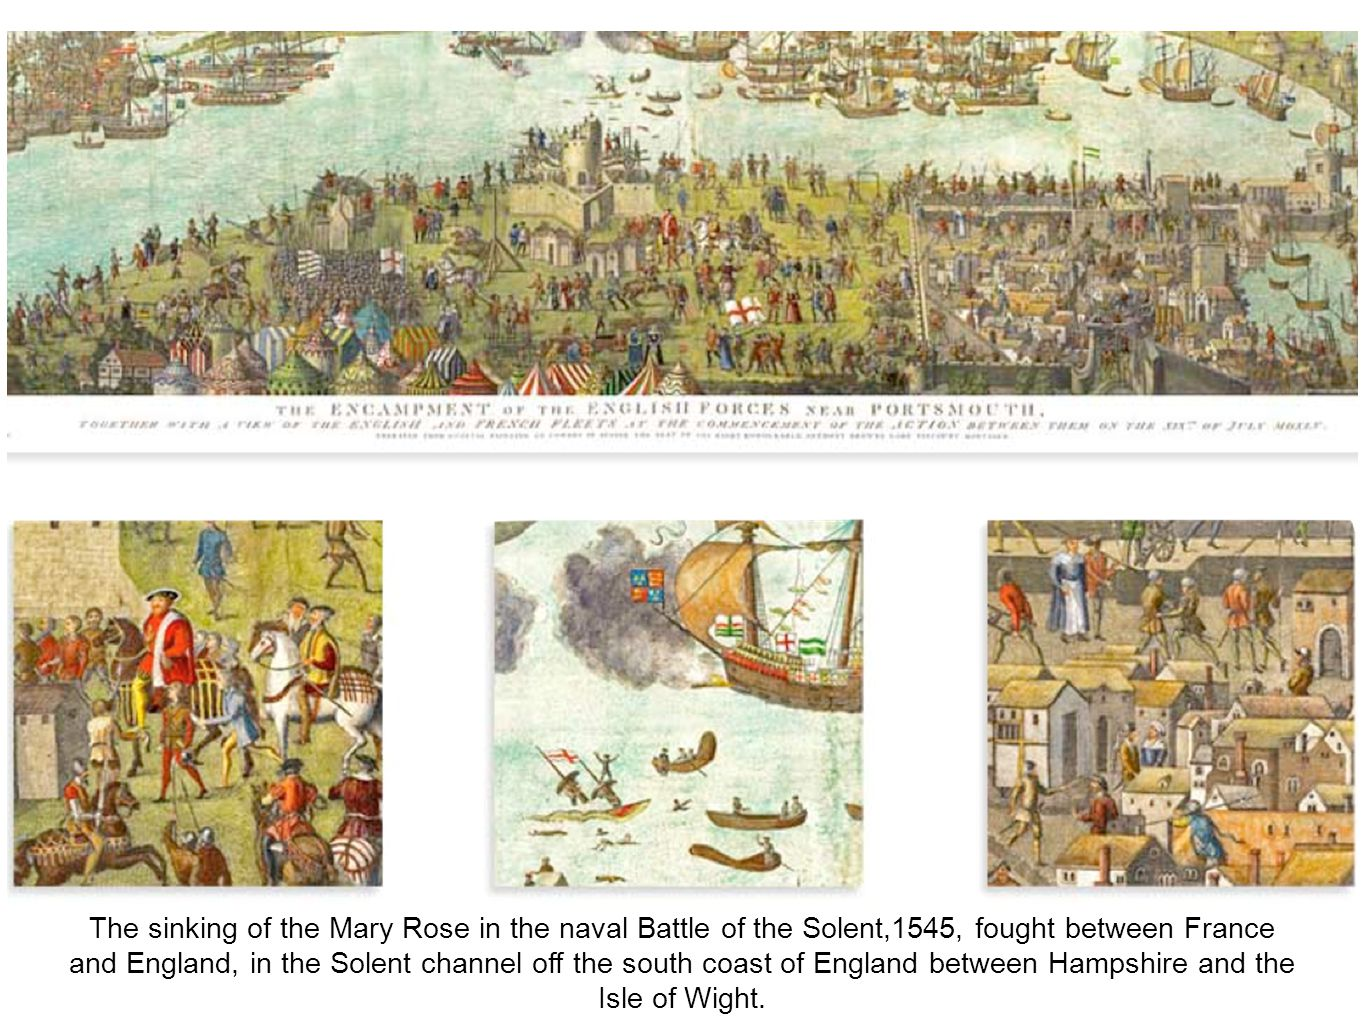 The sinking of the Mary Rose in the naval Battle of the Solent,1545, fought between France and England, in the Solent channel off the south coast of E